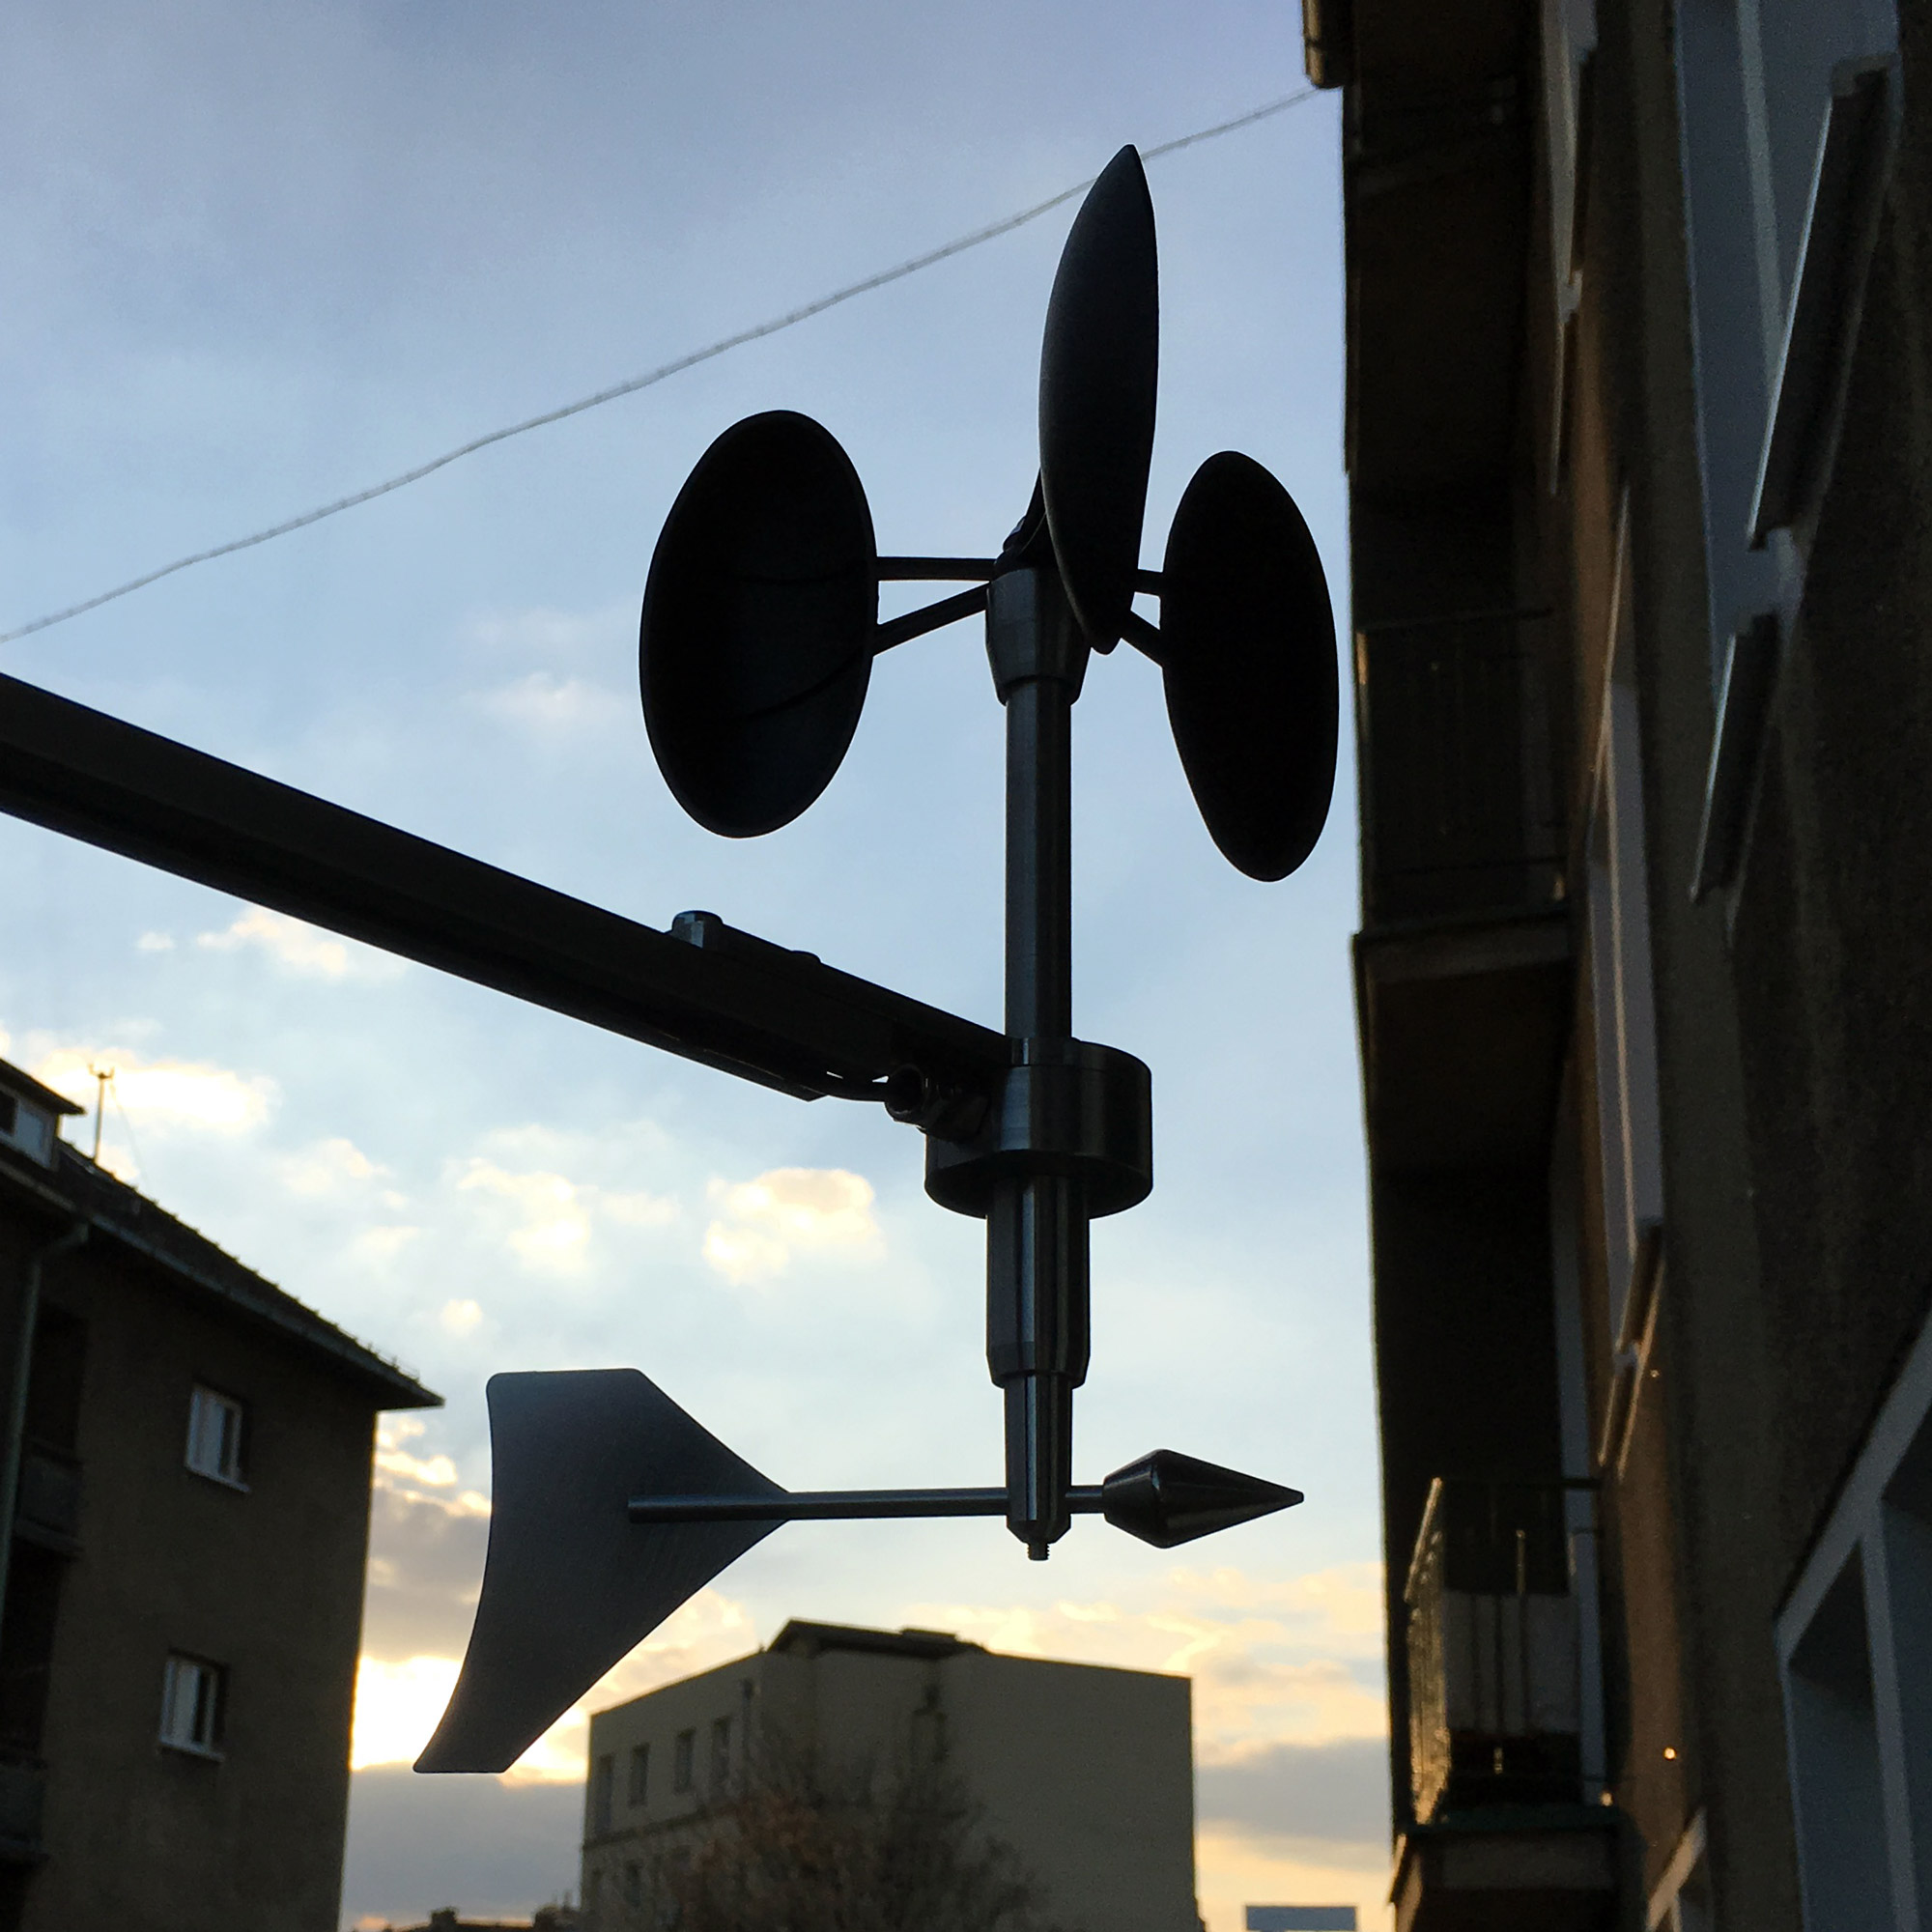 MeteoWind Compact anemometer